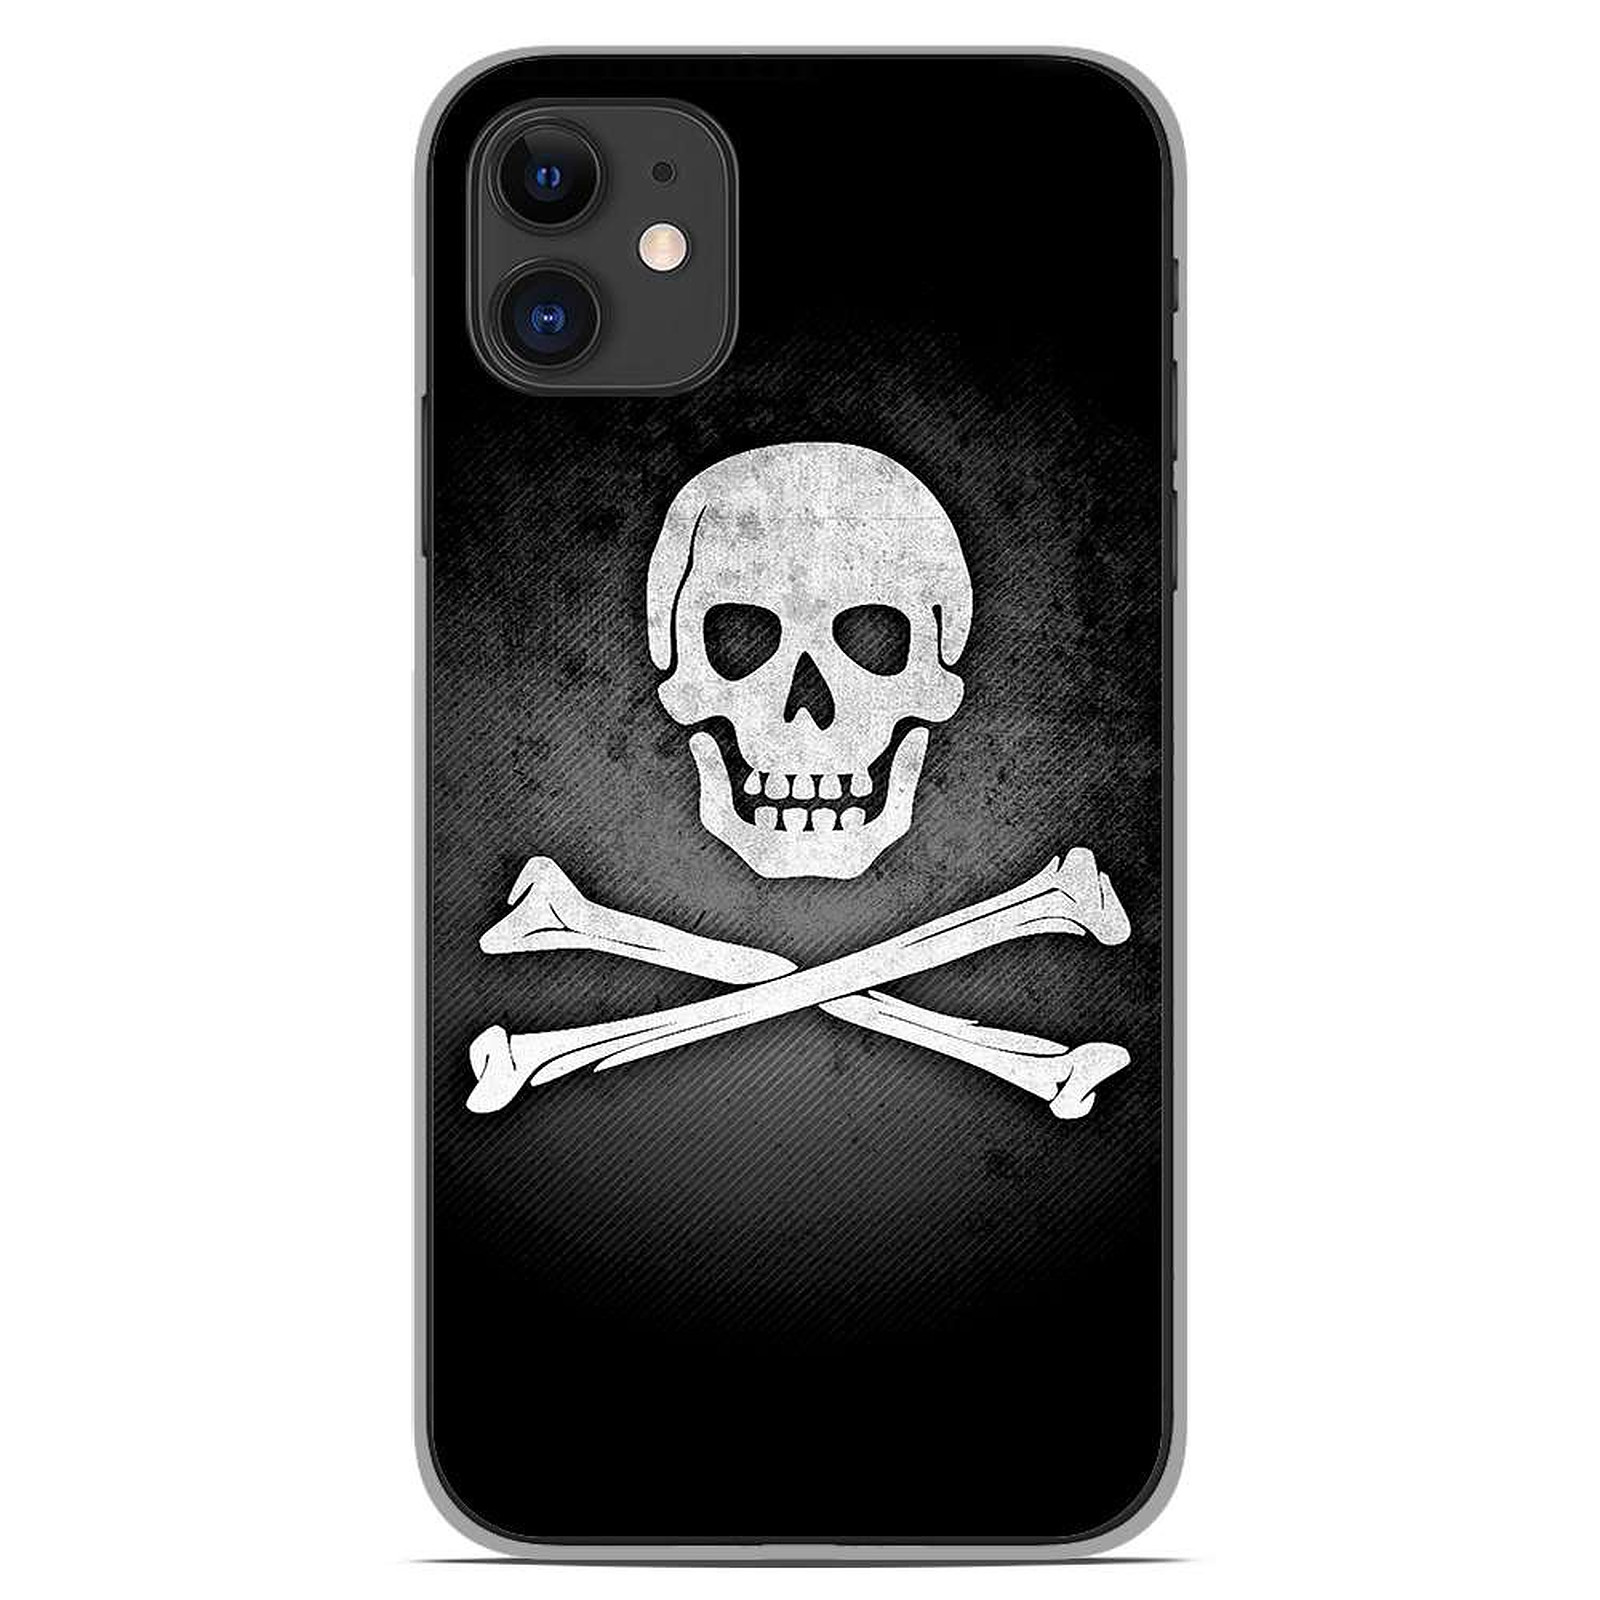 1001 Coques Coque silicone gel Apple iPhone 11 motif Drapeau Pirate